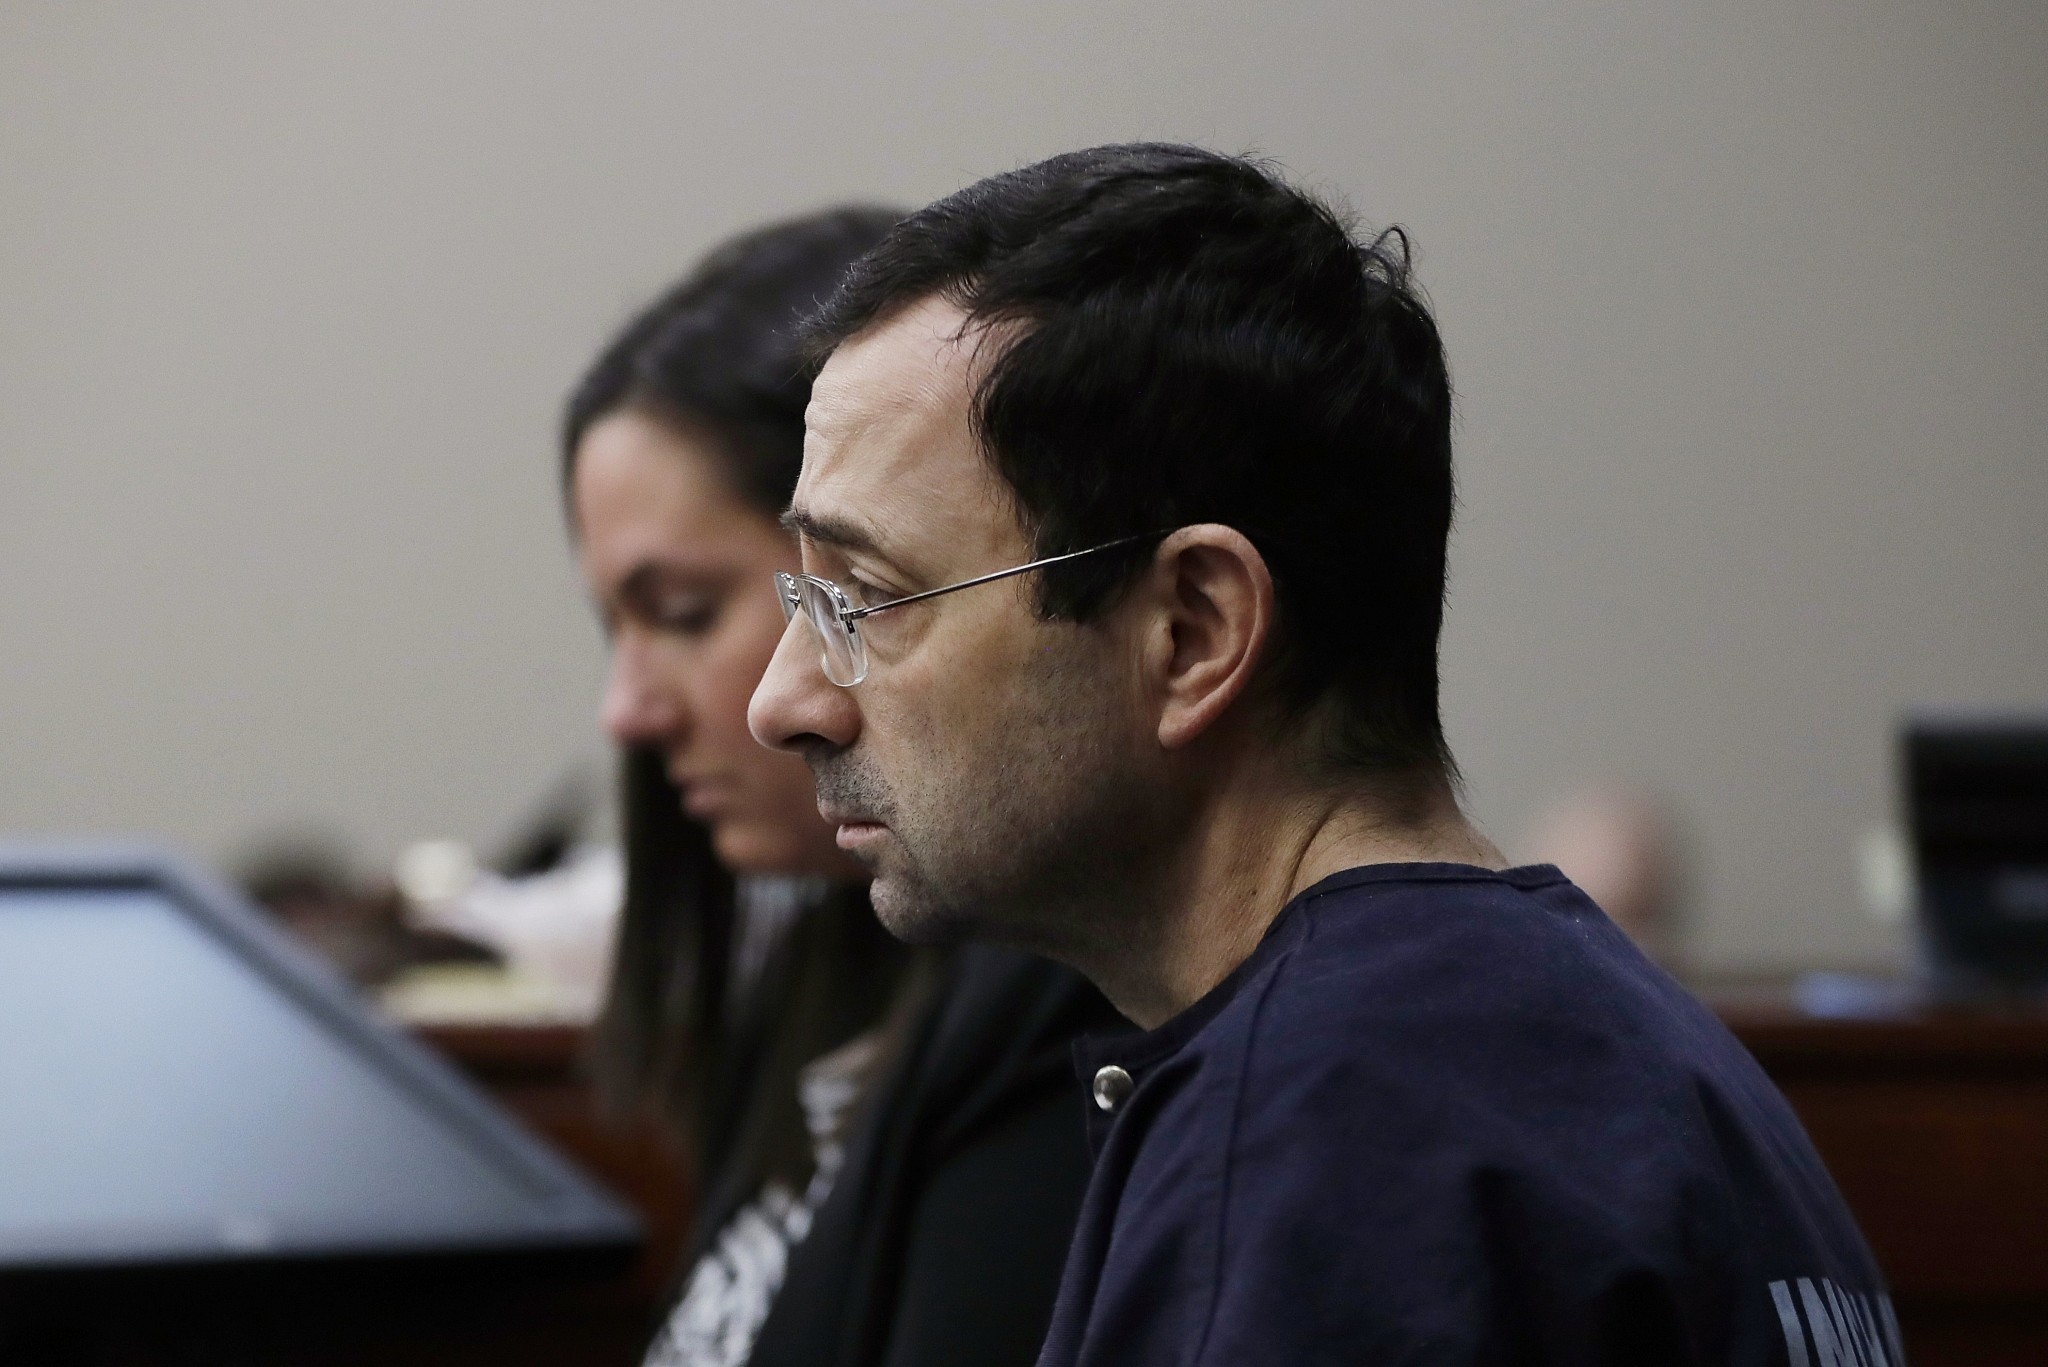 Former Nassar patient and Buffalo native speaking out after sentencing